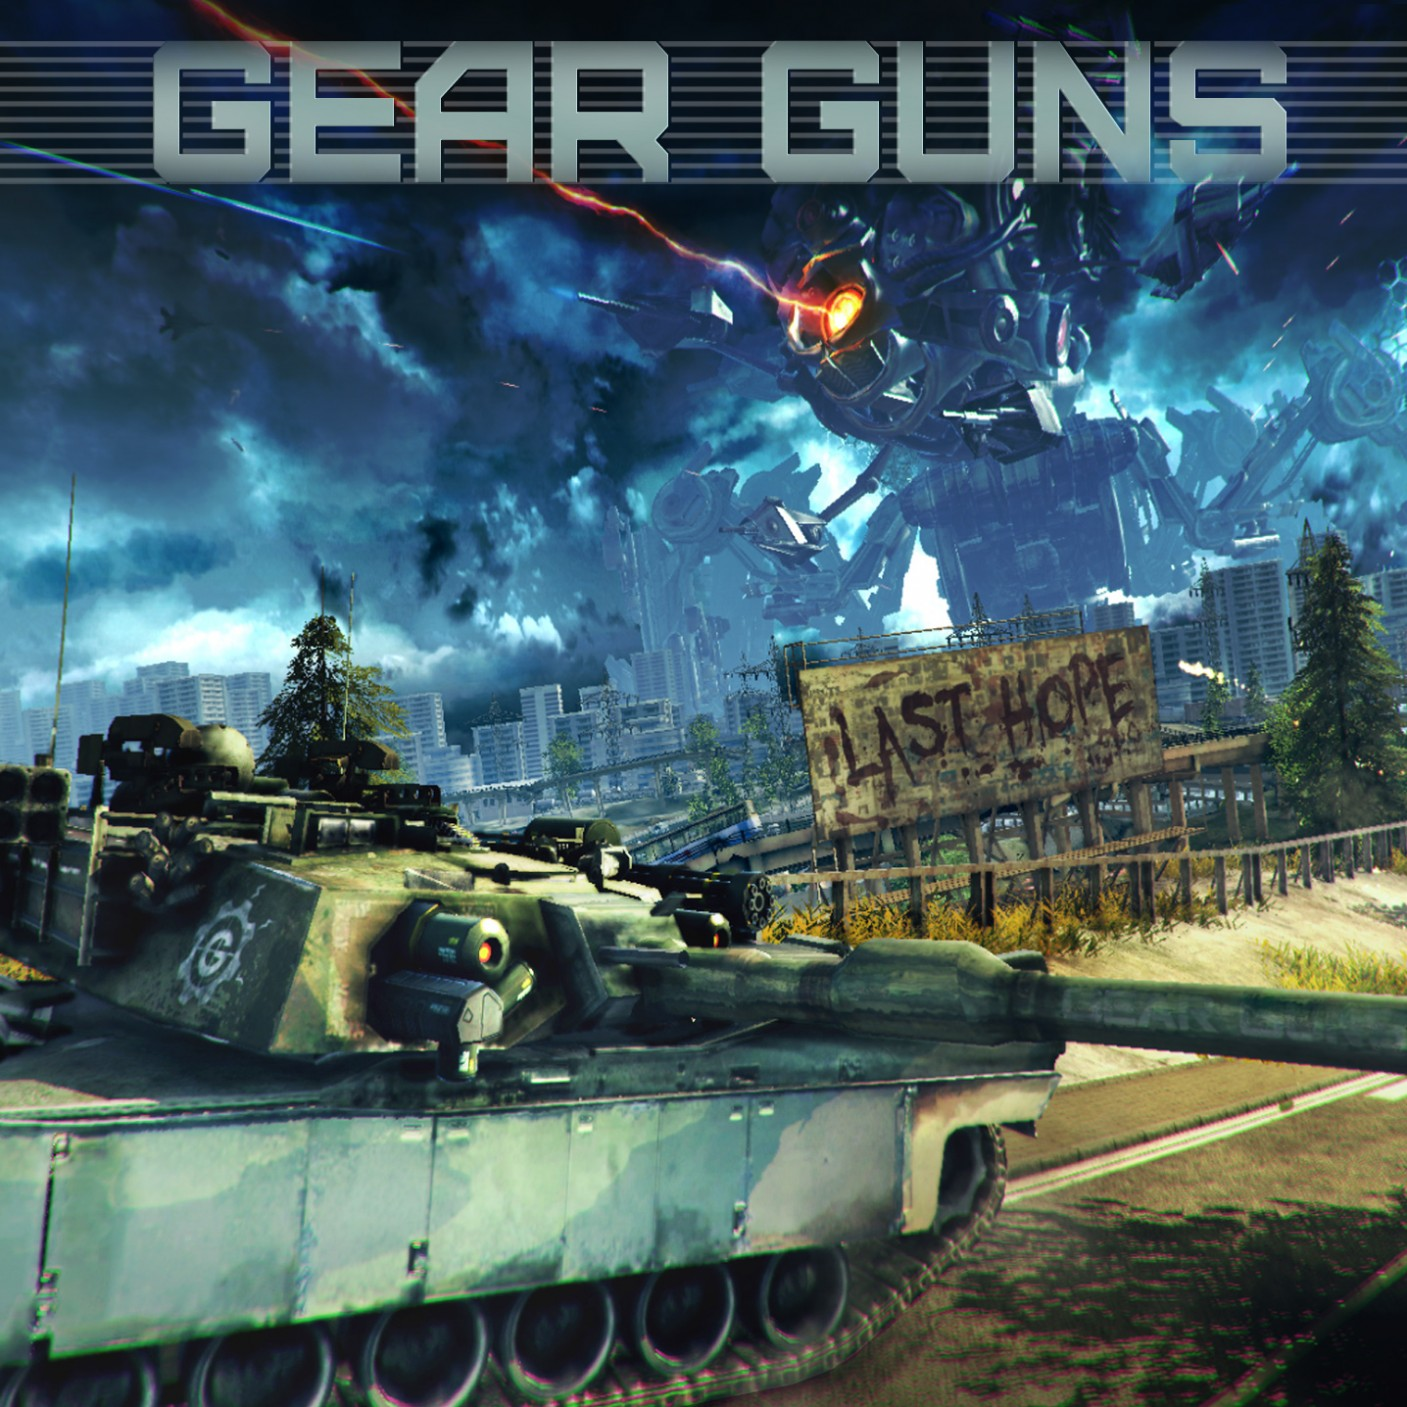 GEARGUNS Tank Offensive Free Download